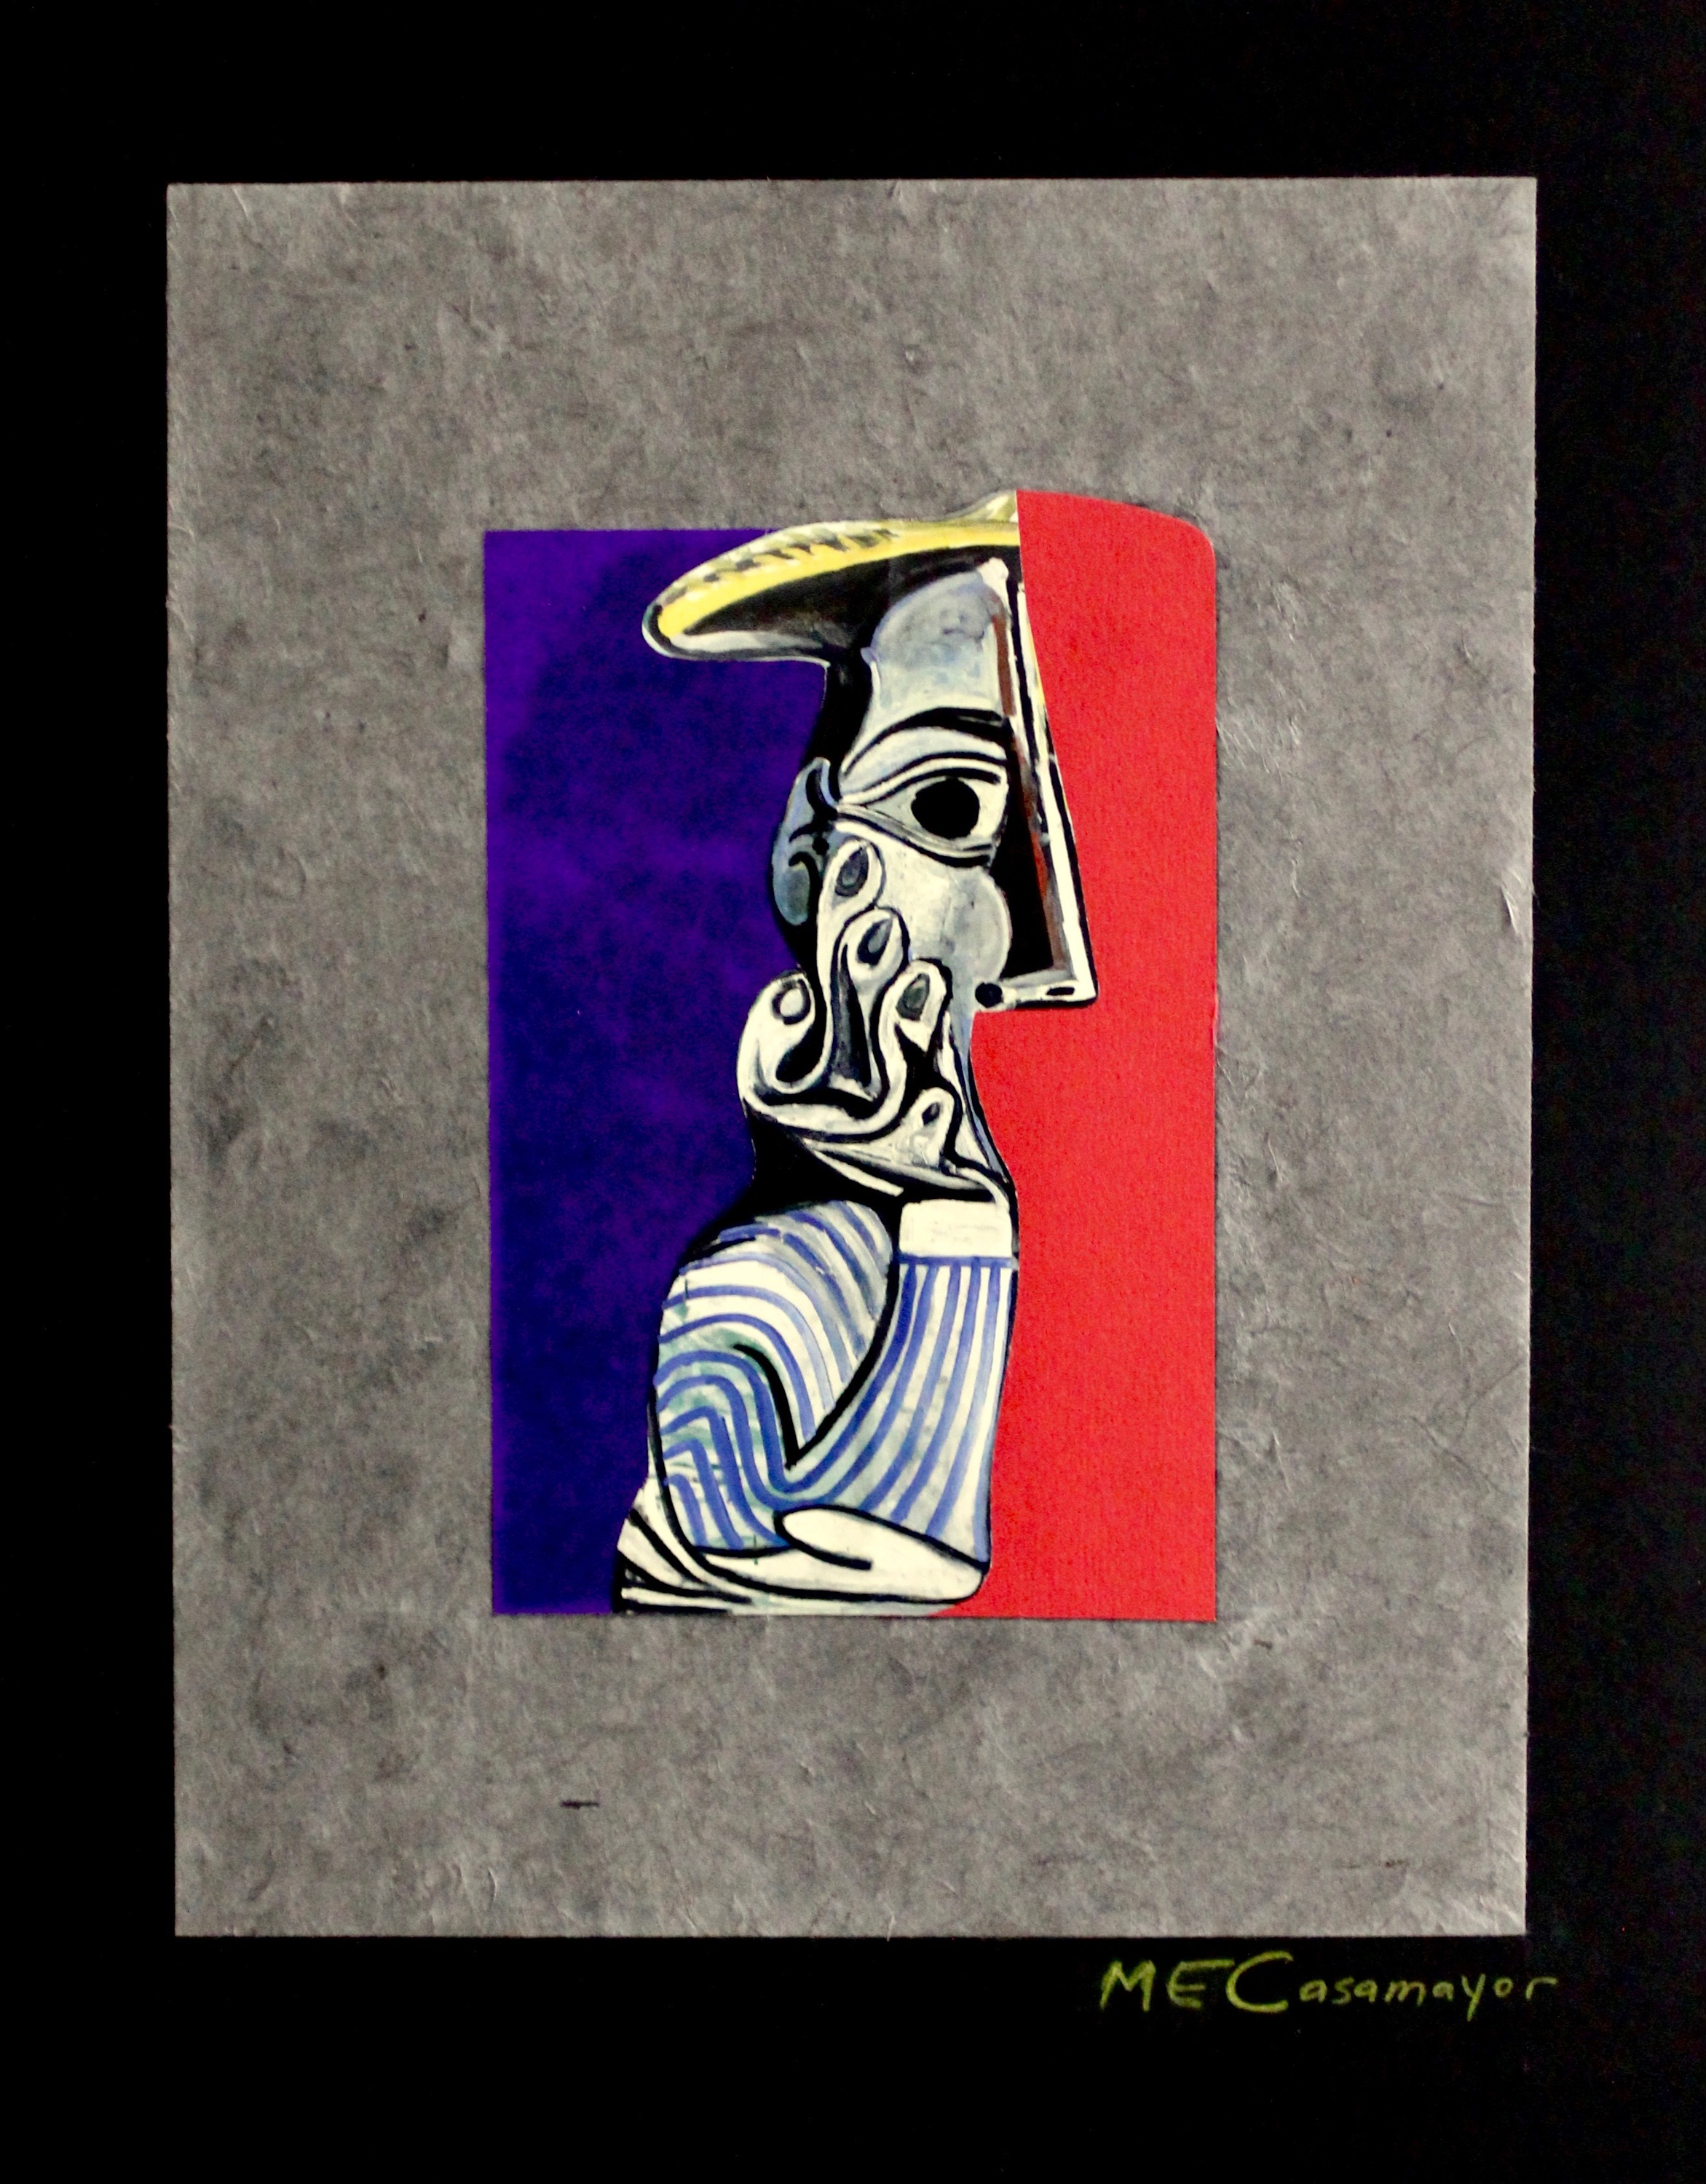 Homage to picasso 3 qi6dle